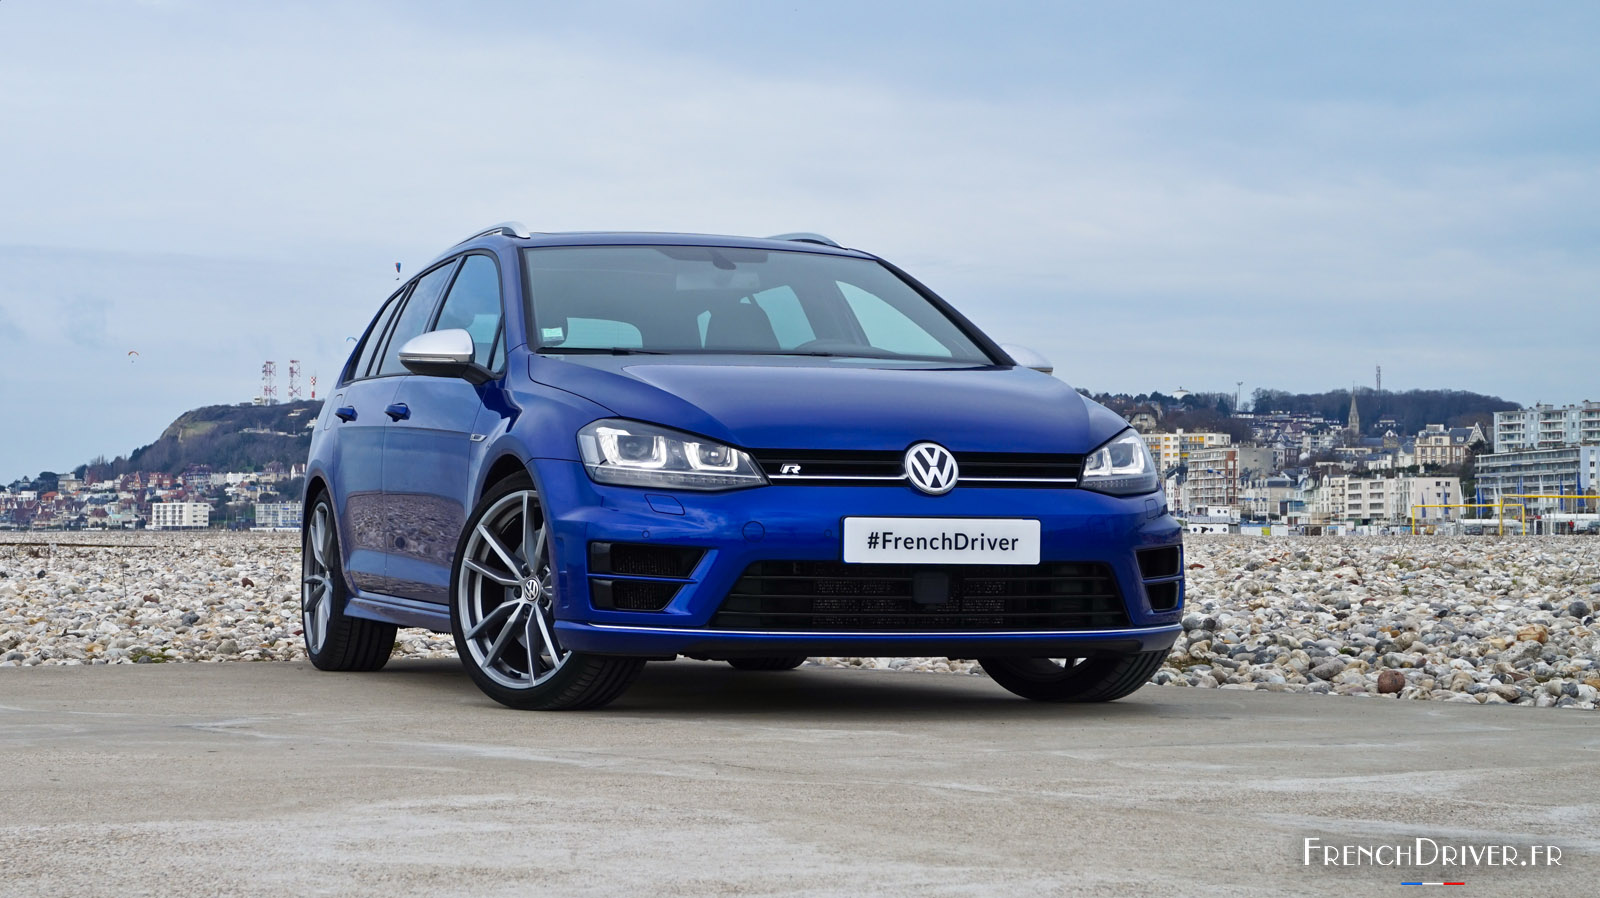 essai volkswagen golf vii r sw un break ravageur french driver. Black Bedroom Furniture Sets. Home Design Ideas